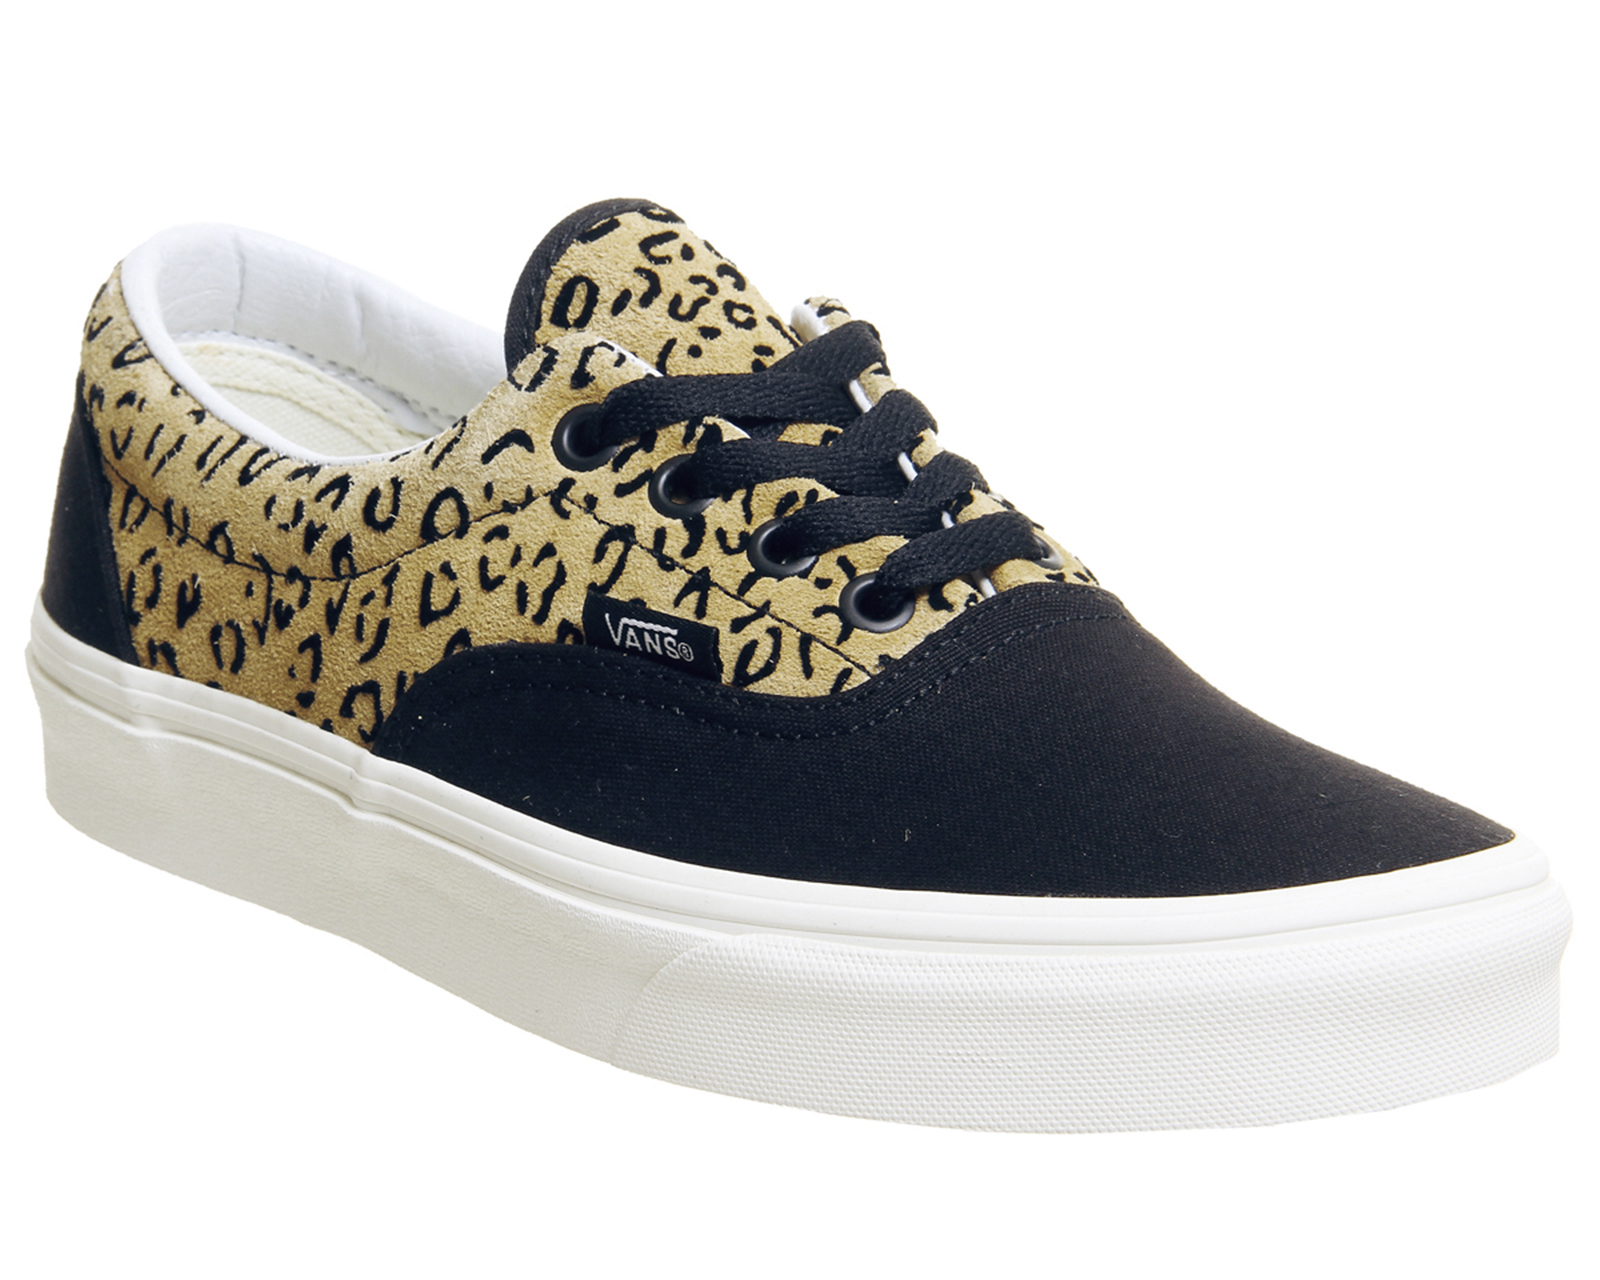 72a2c448f5 Sentinel Mens Vans Era Trainers Leopard Black Taffy Marshmellow Exclusive Trainers  Shoes